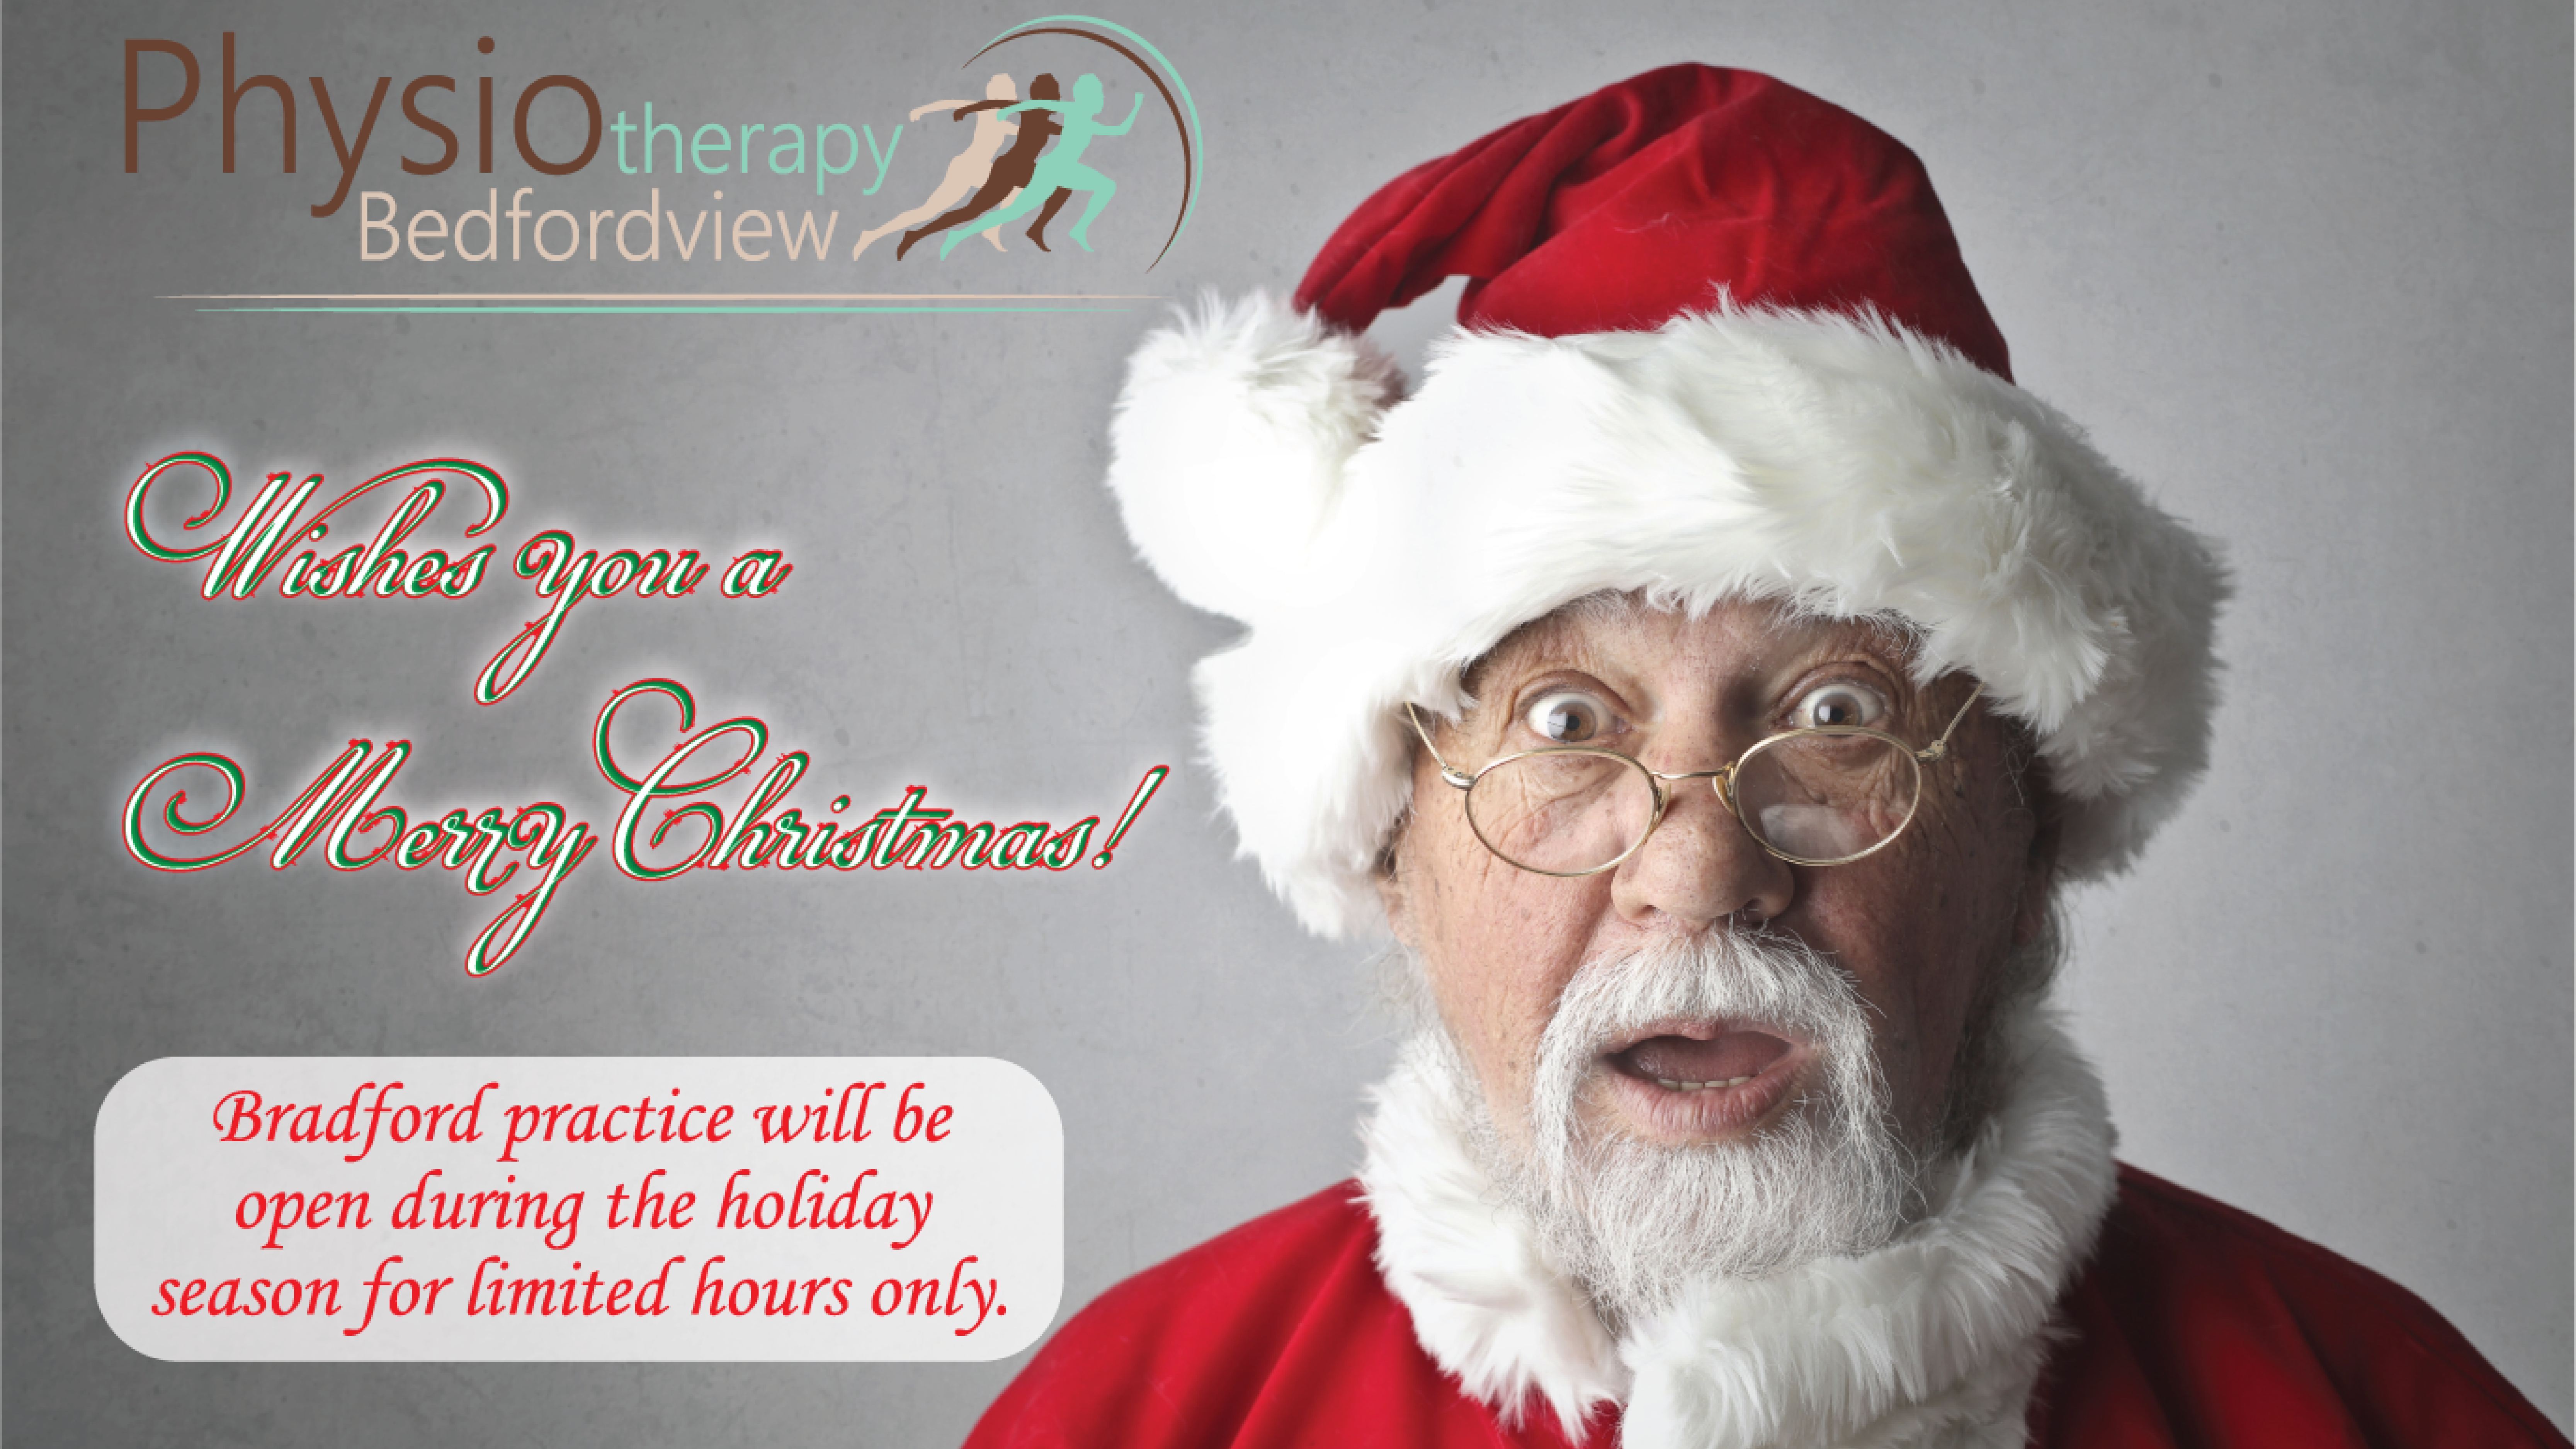 Physiotherapy Bedfordview Holiday Hours